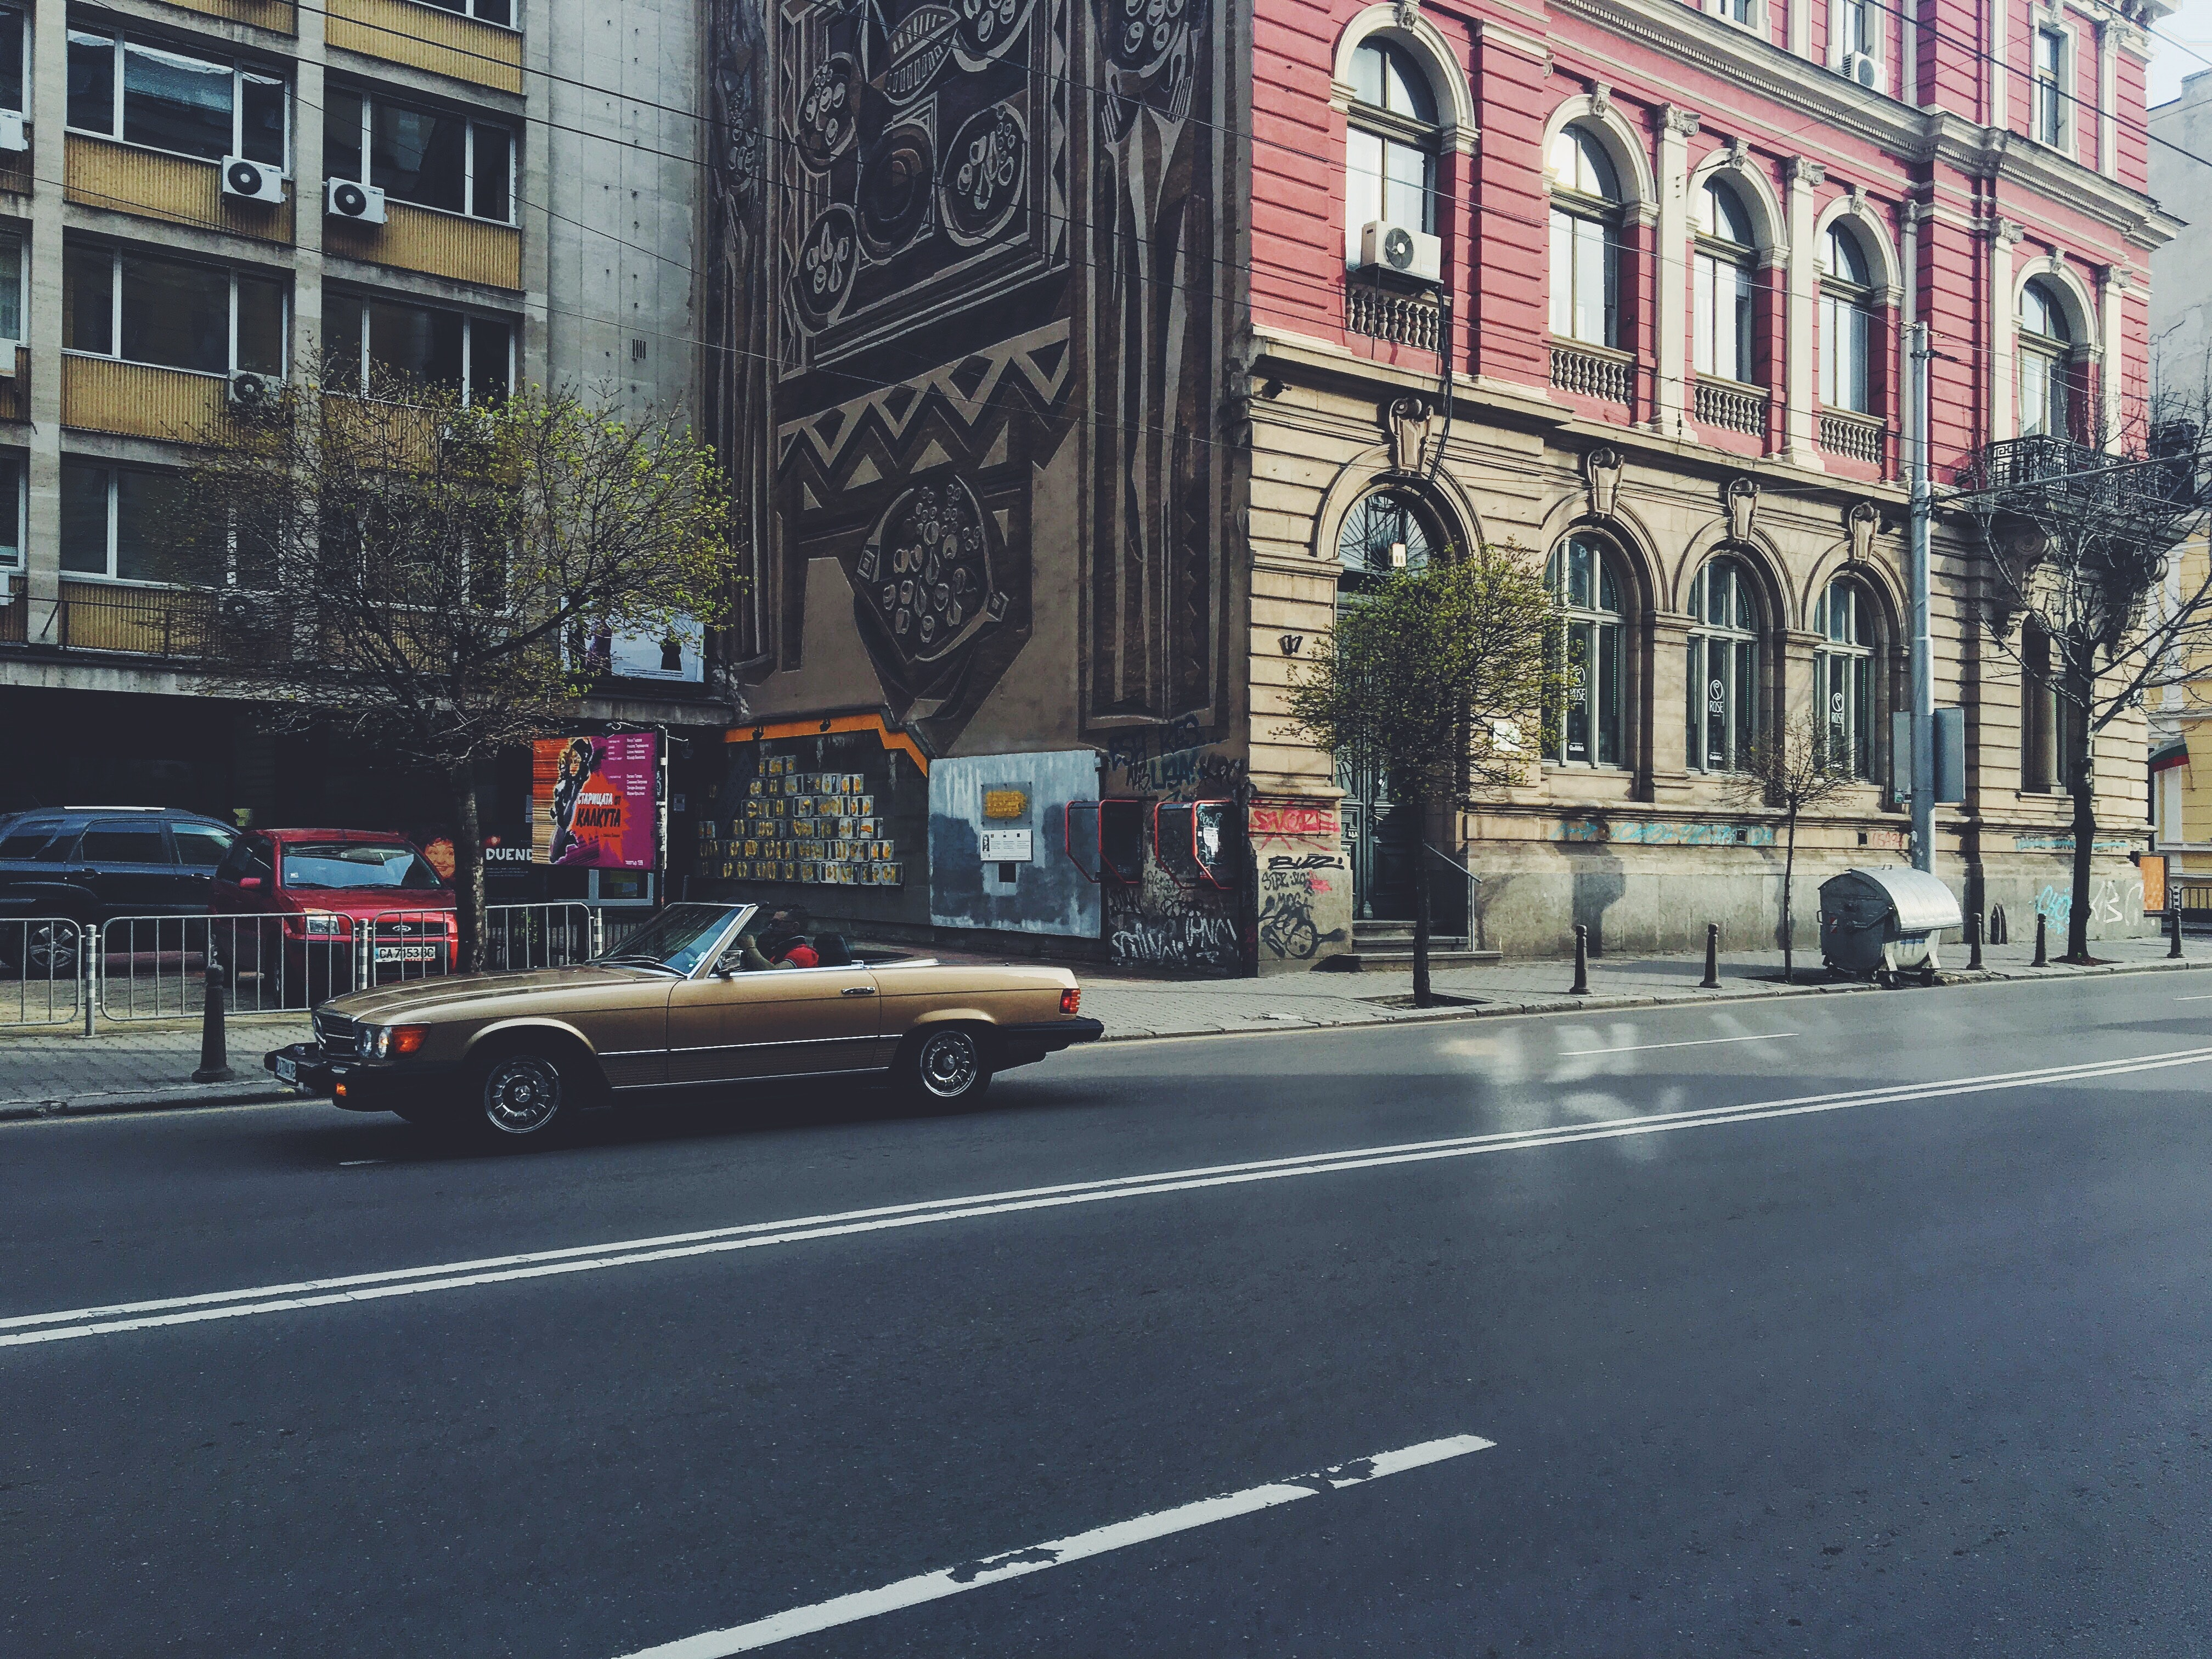 Photo of Brown Convertible Coupe on the Road, Architecture, Pavement, Urban, Trees, HQ Photo